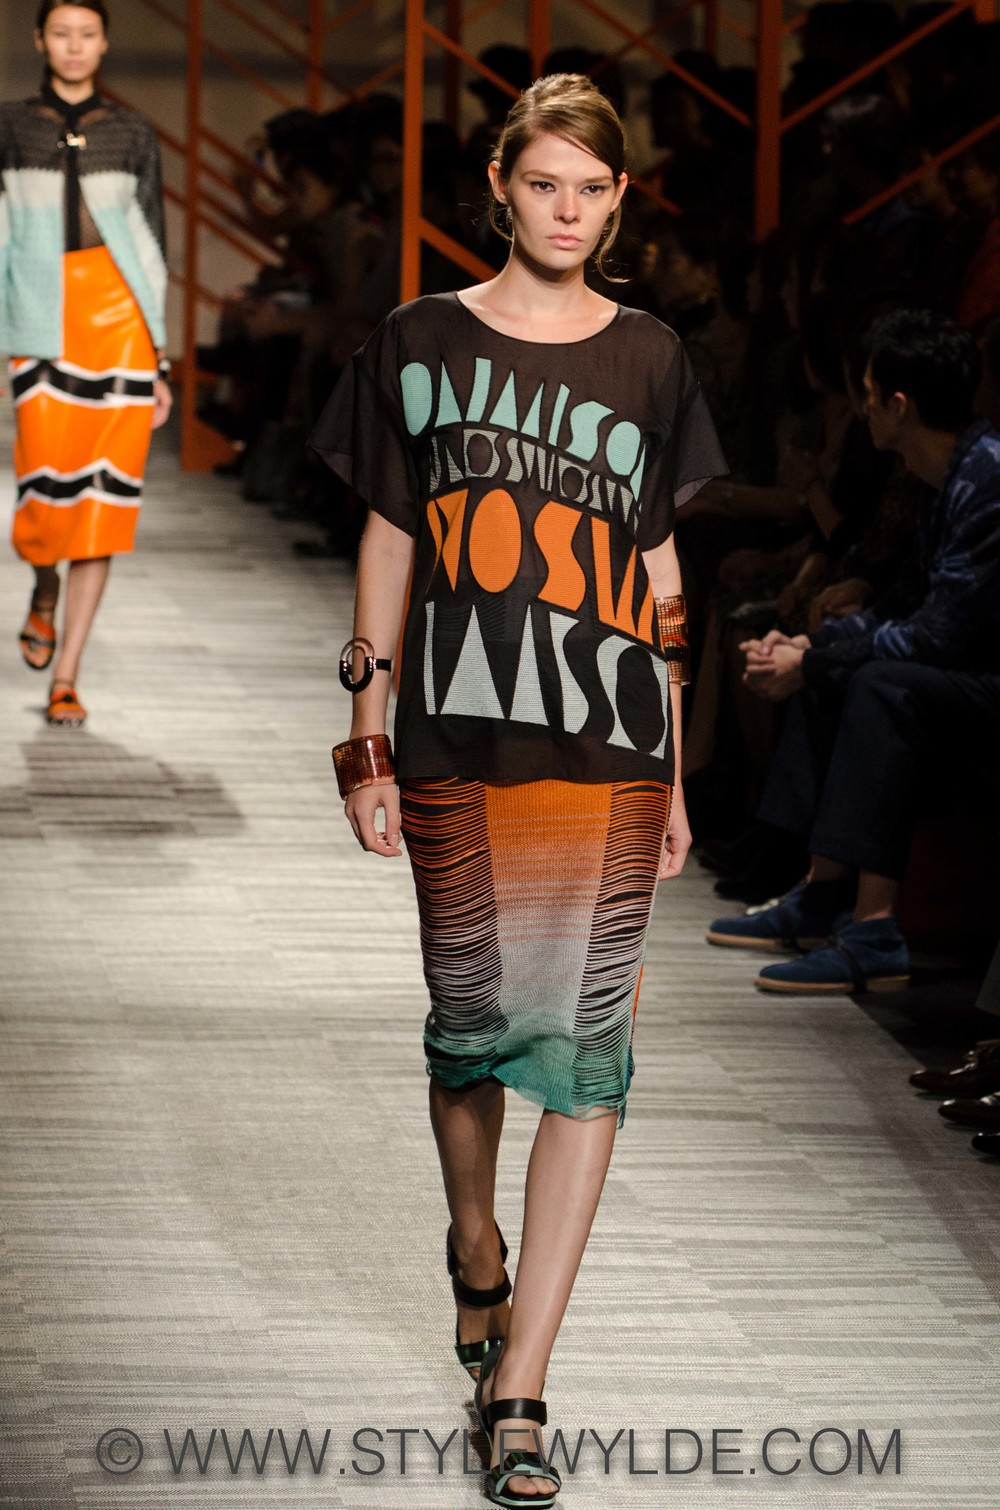 STYLEWYLDE_Missoni_SS2014 (1 of 1)-19.jpg